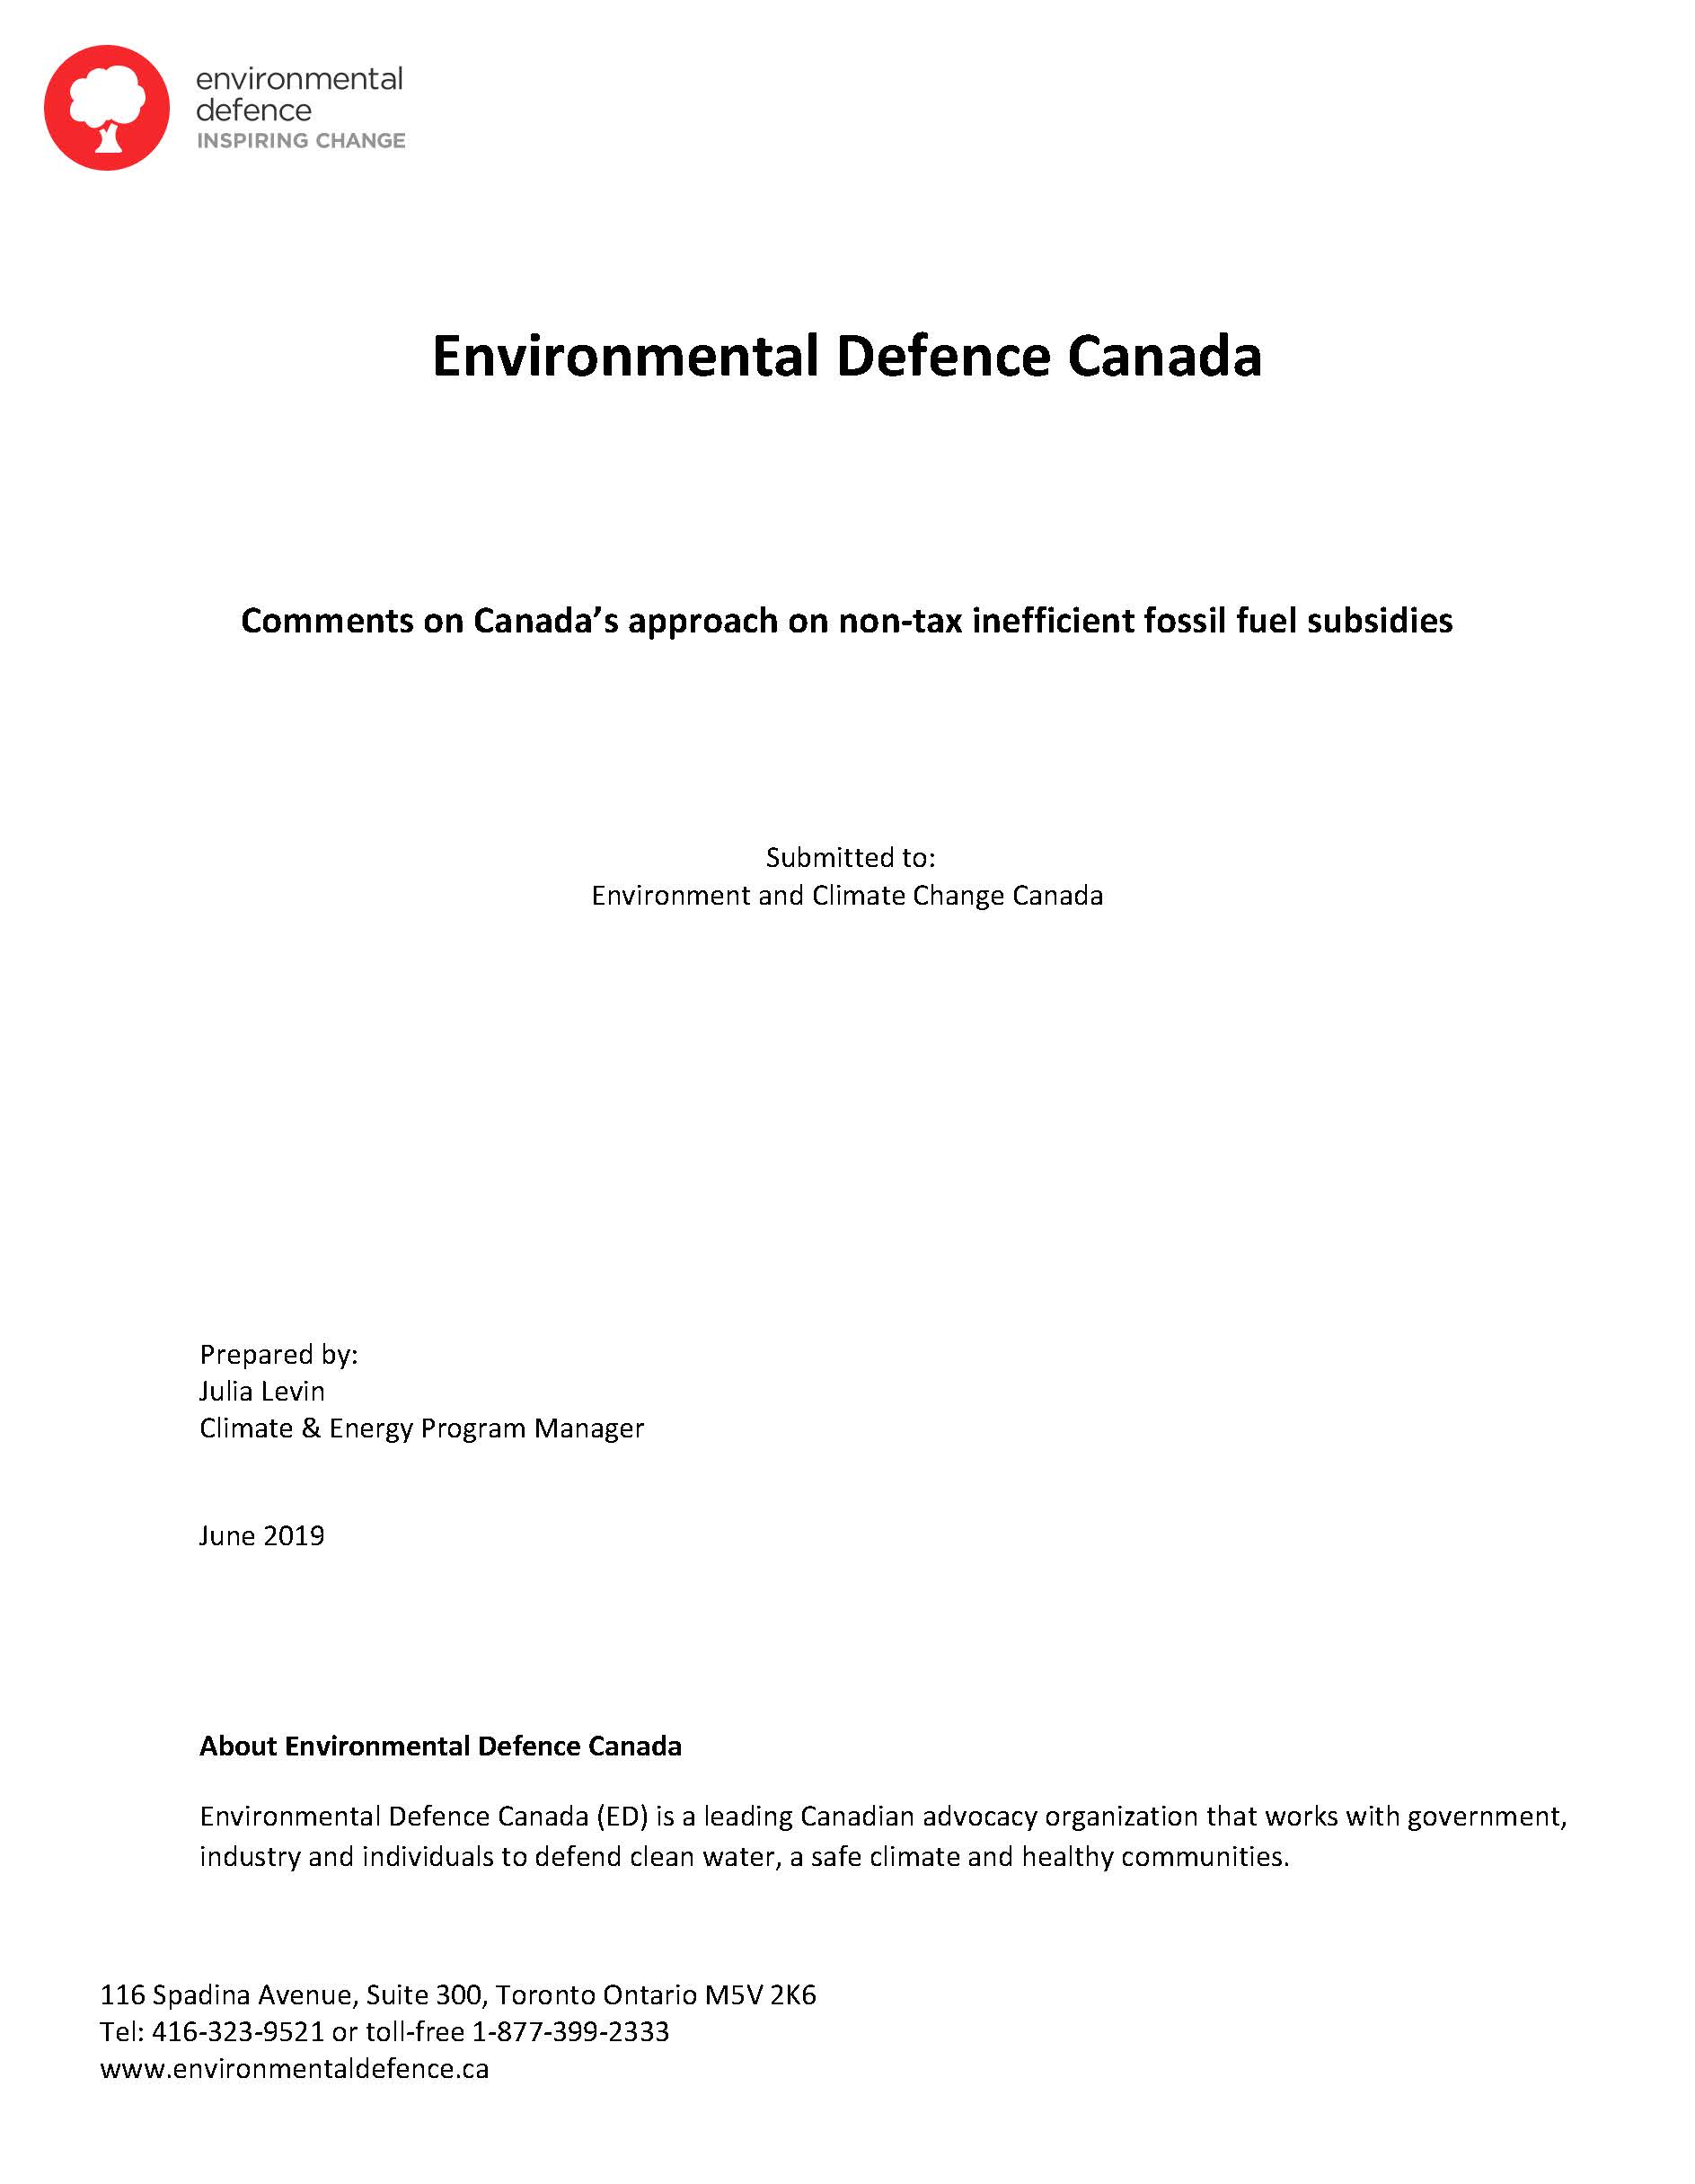 The cover of Environmental Defence's submission on non-tax subsidies that support the oil and gas industry